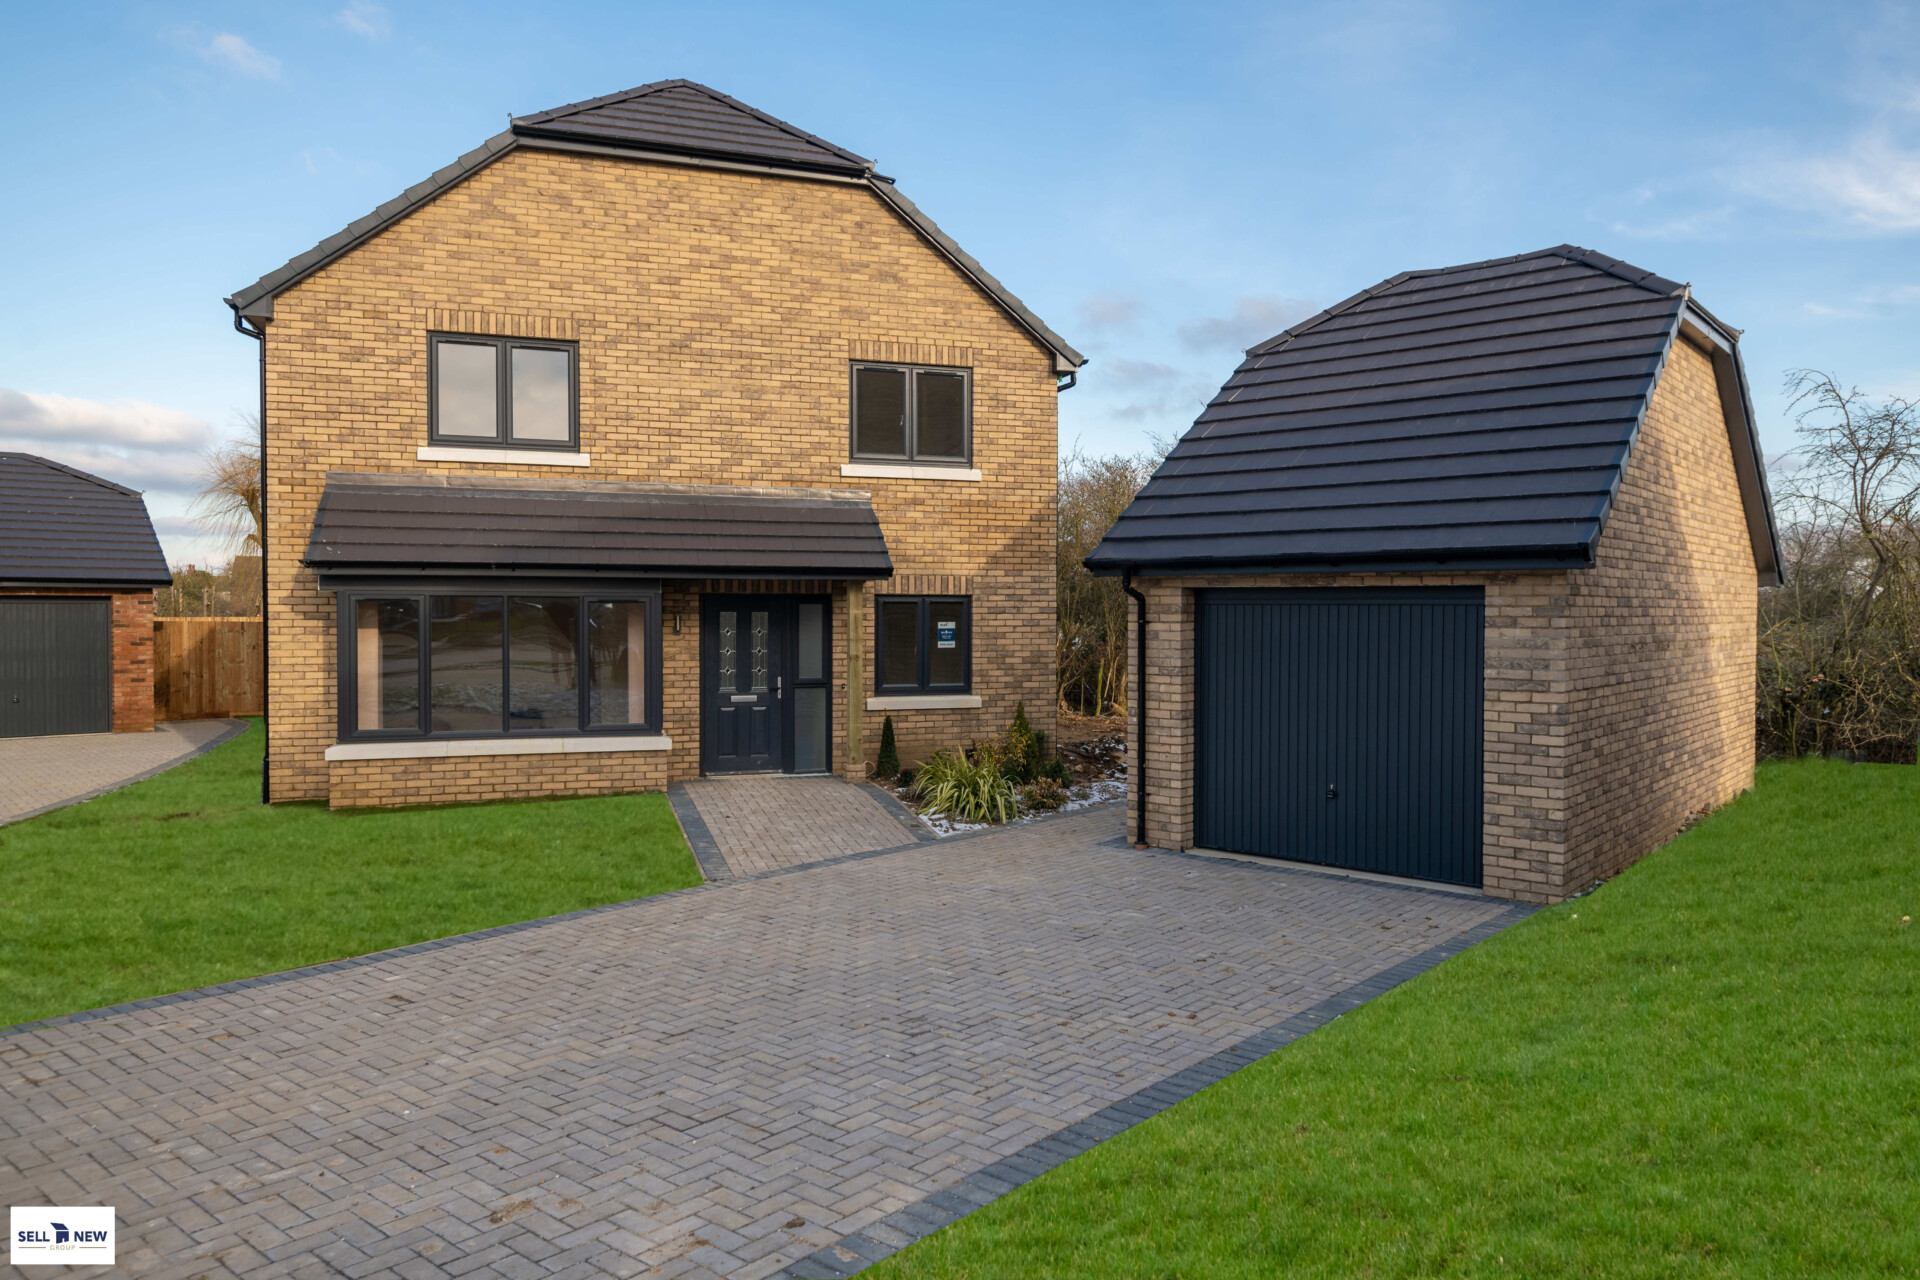 Plot 10 Earl Close, Clifton – Four bedroom detached located on corner plot